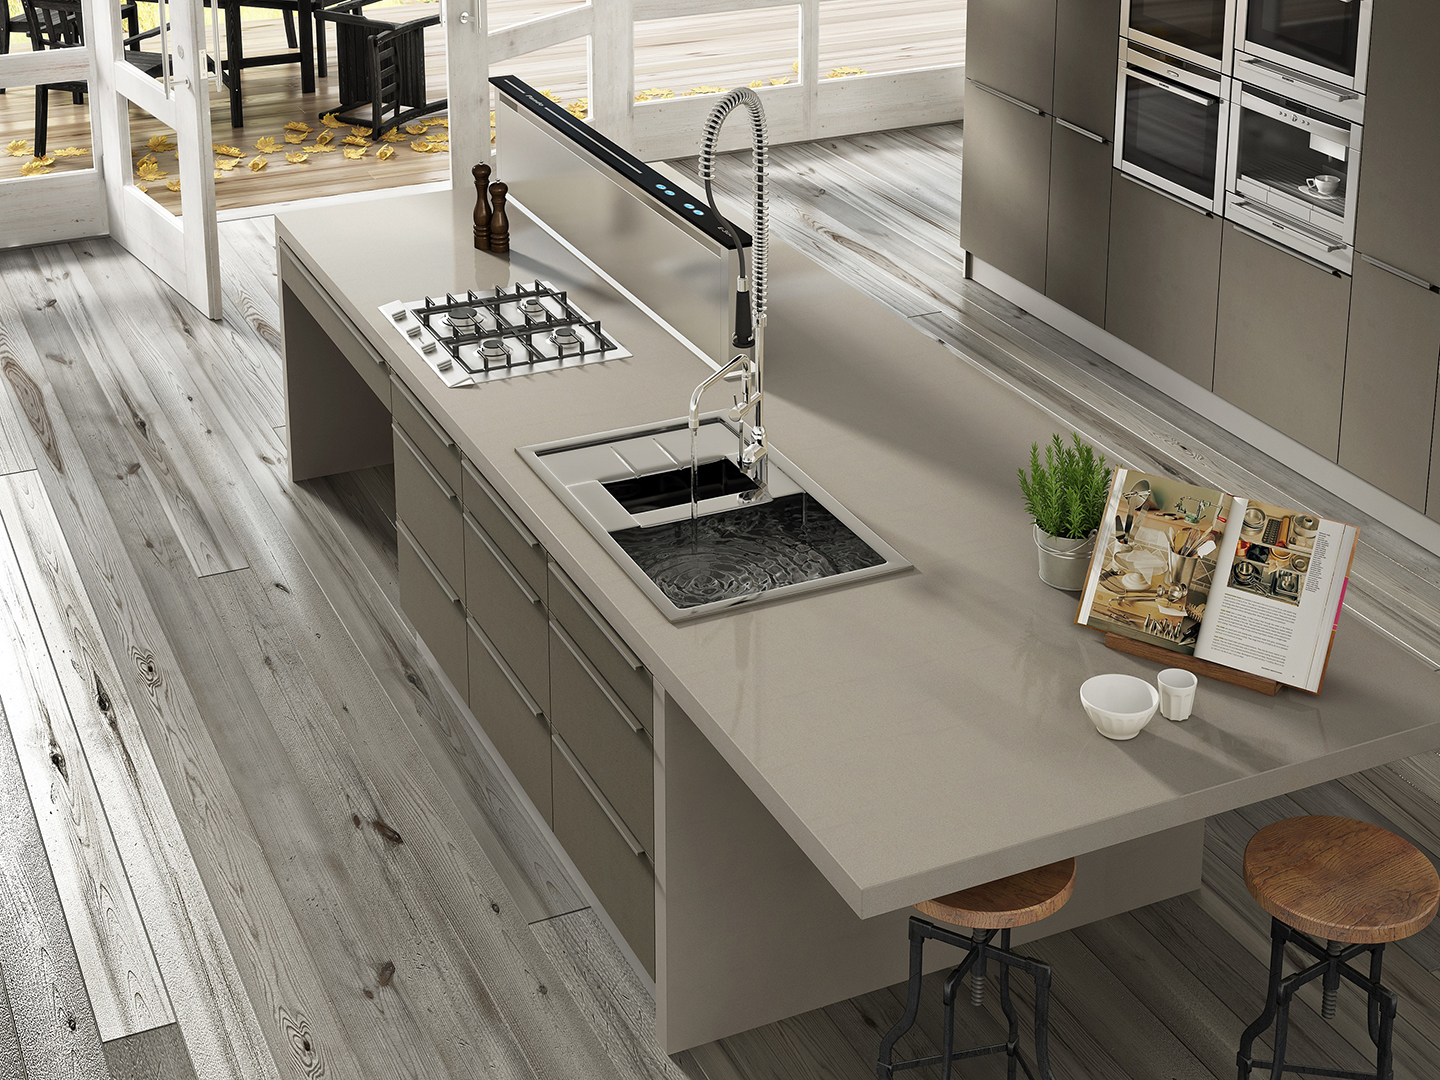 ROUGUI_Coleccion-Basic_Silestone